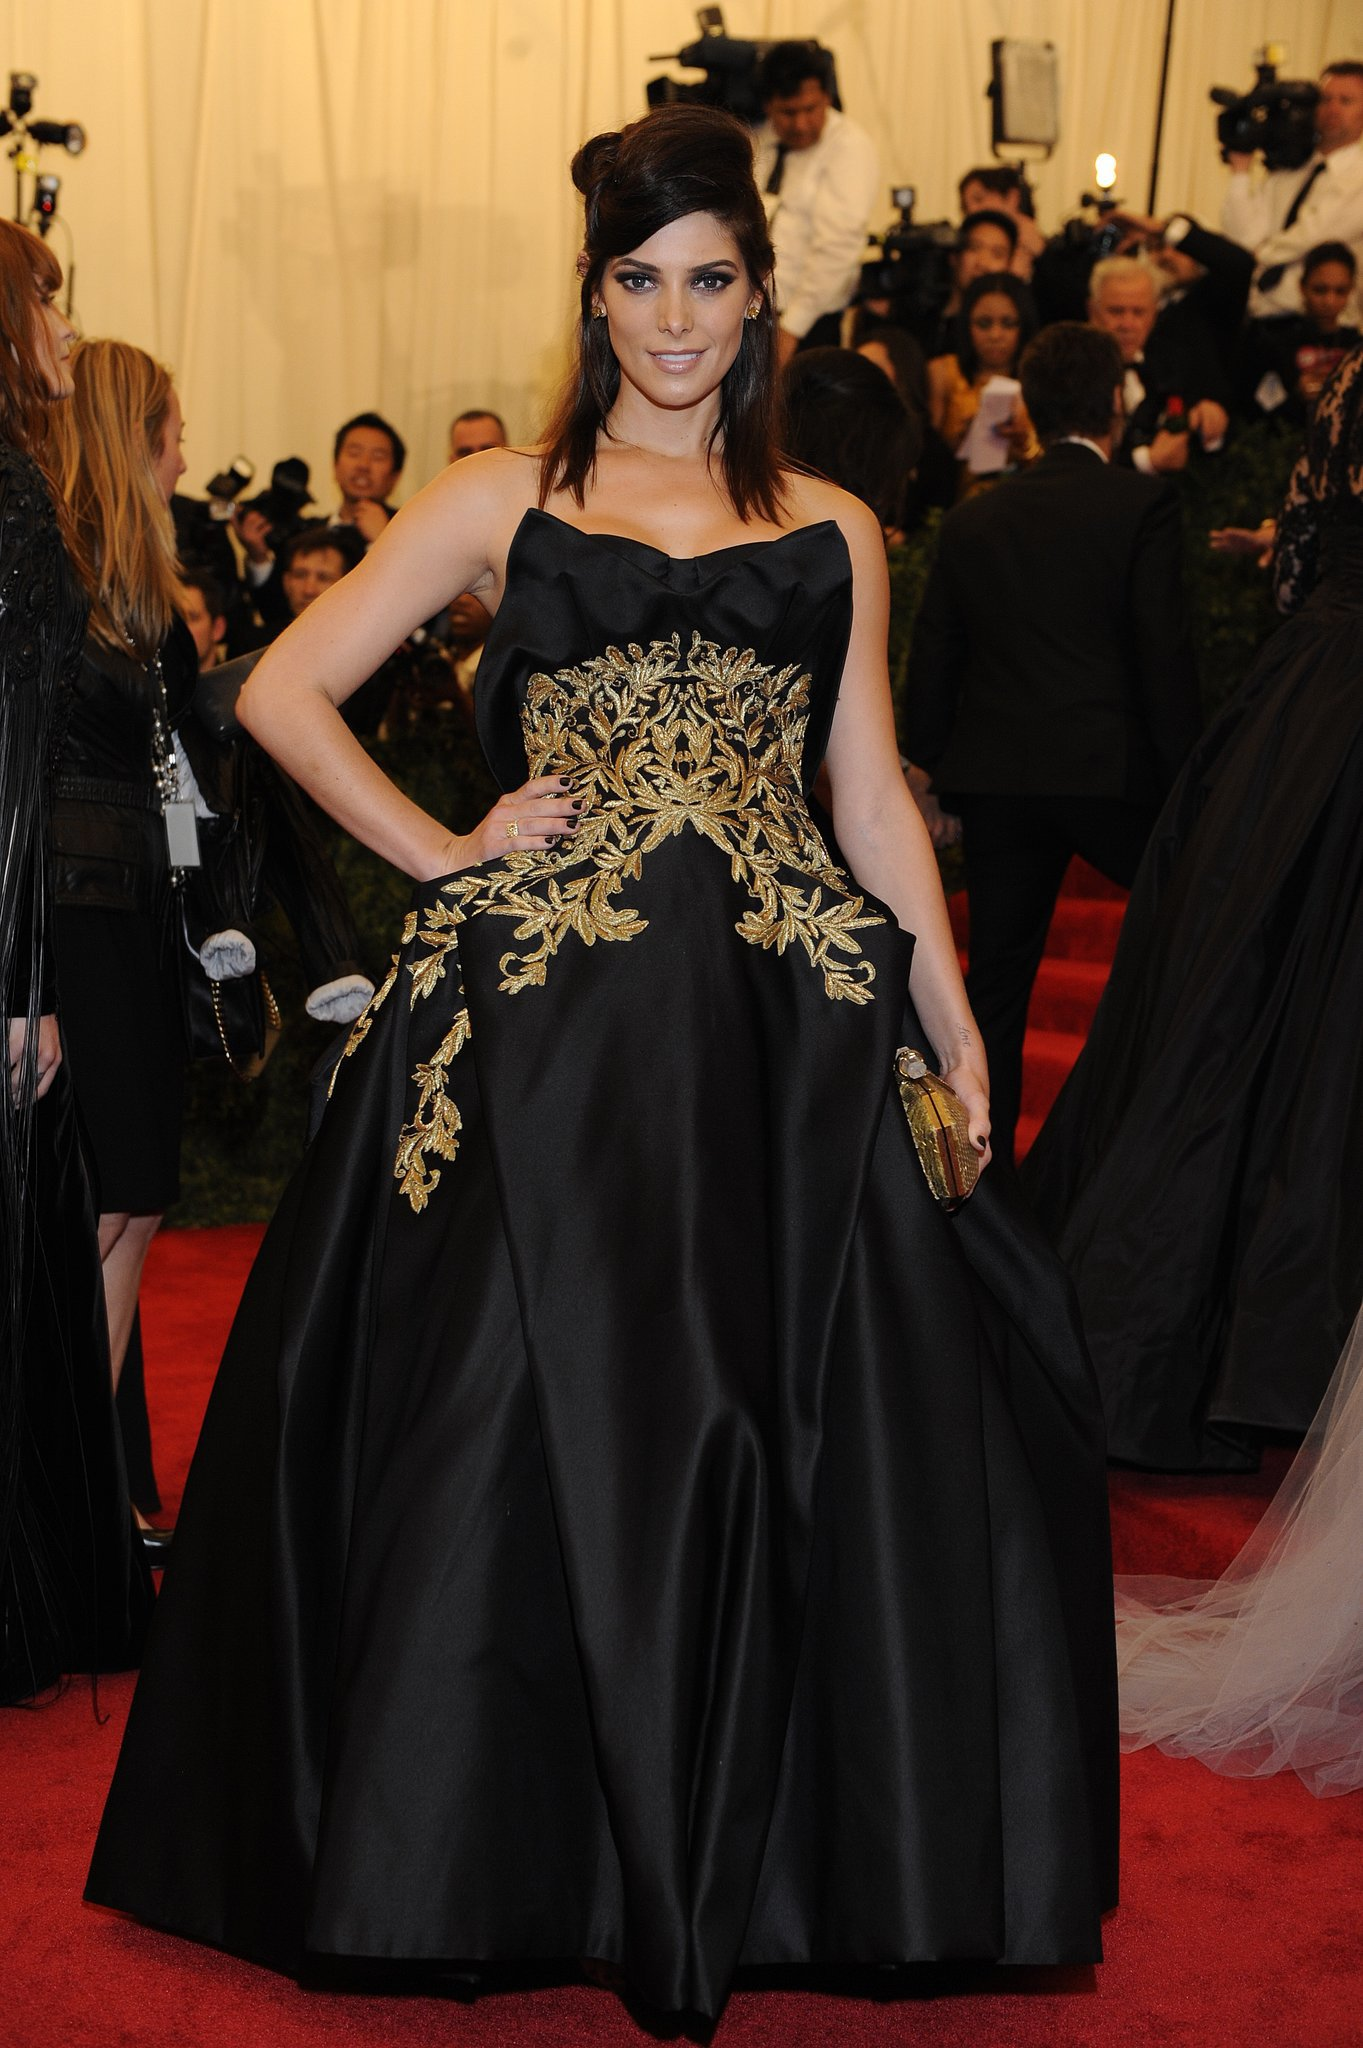 Having a major Marchesa moment at the Punk: Chaos to Couture Met Gala event in 2013.